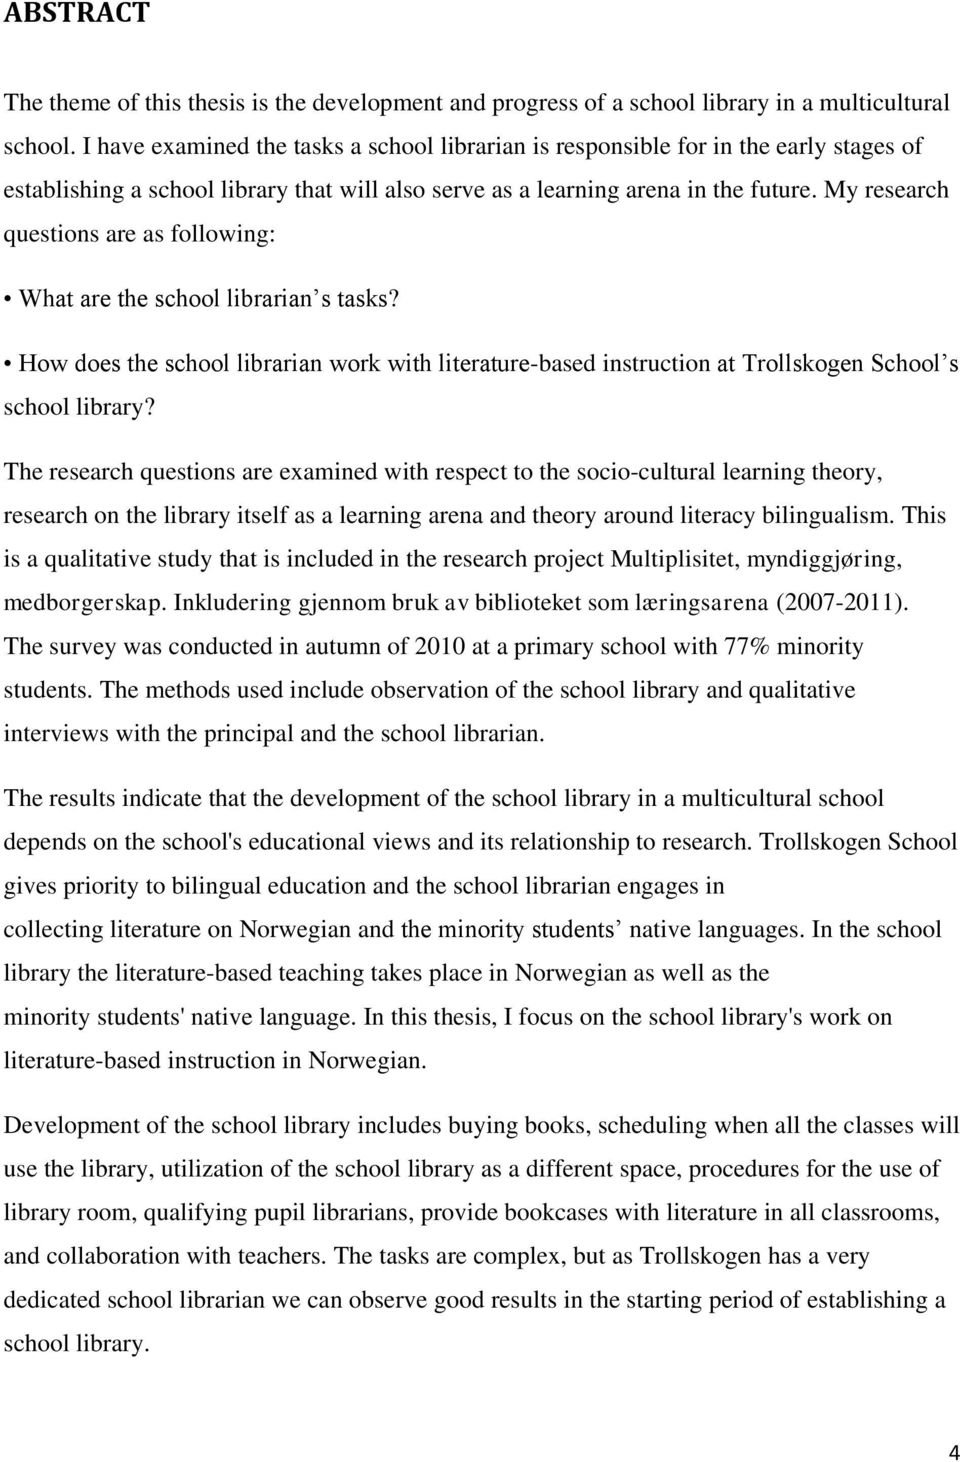 My research questions are as following: What are the school librarian s tasks? How does the school librarian work with literature-based instruction at Trollskogen School s school library?